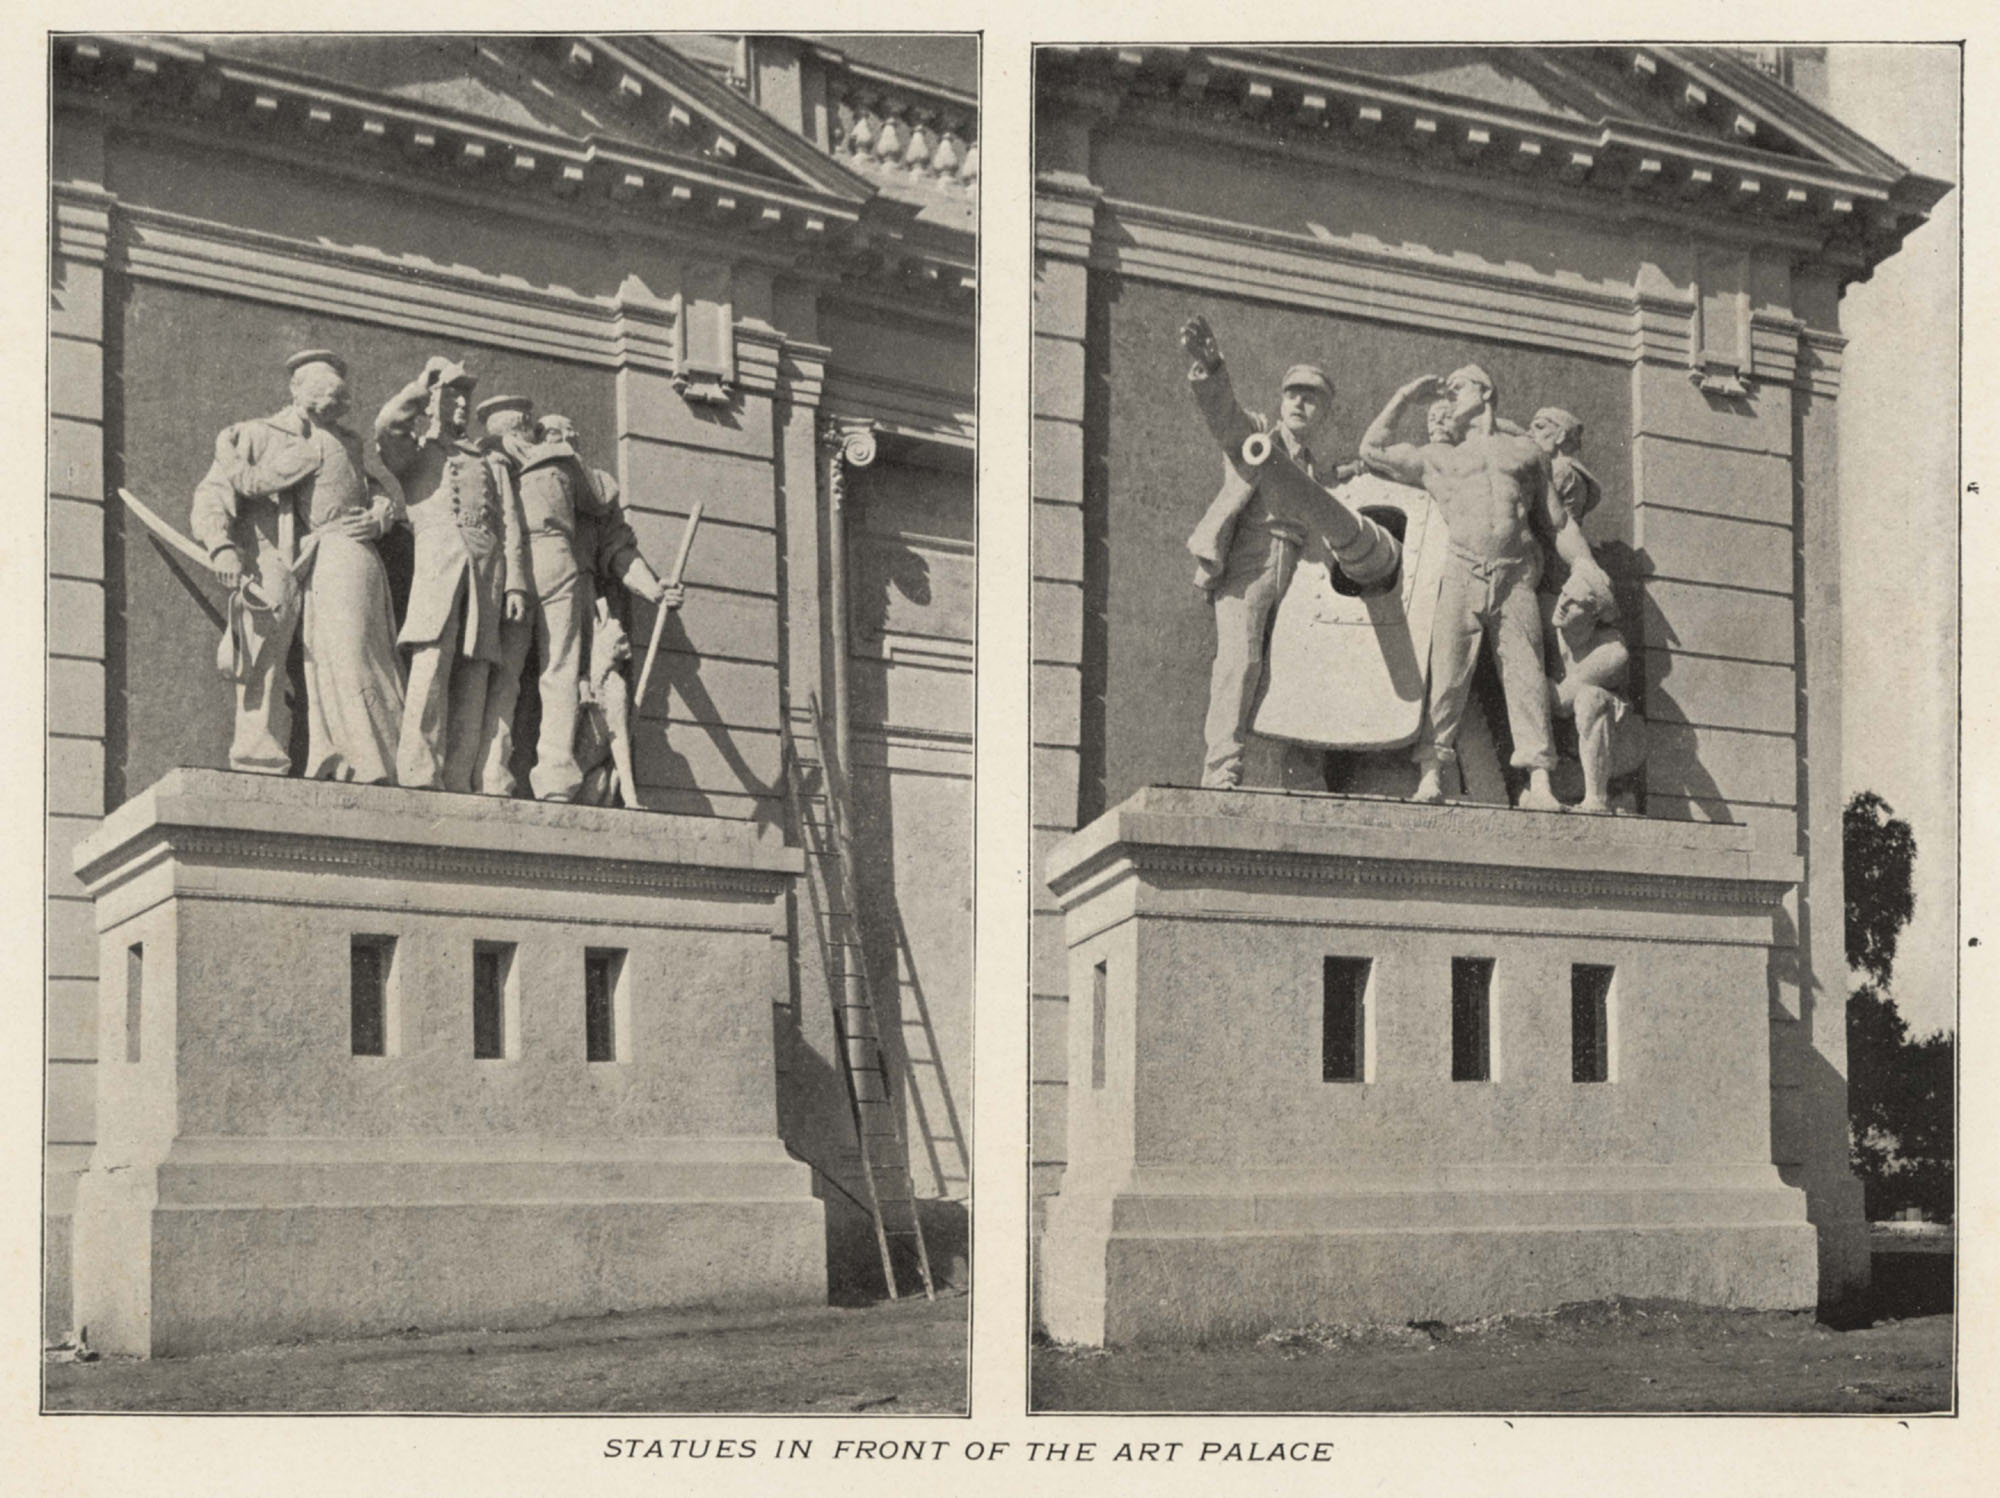 Art Palace statues